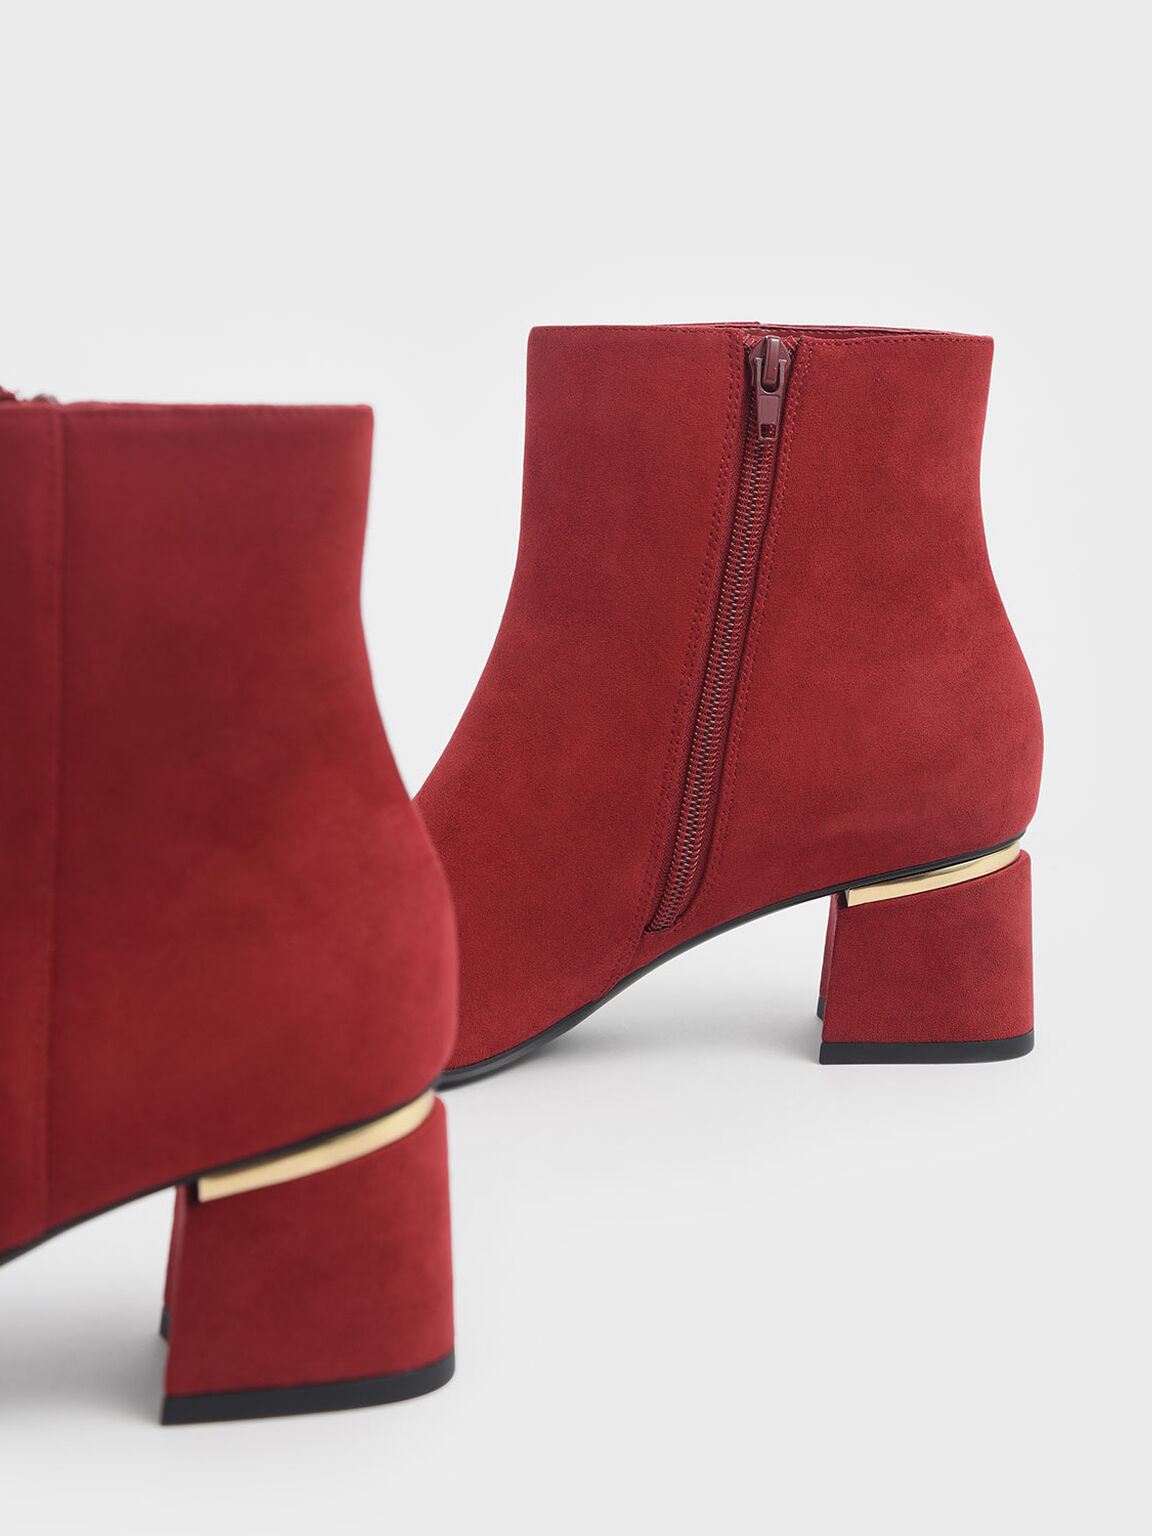 Metal Accent Block Heel Textured Ankle Boots, Red, hi-res